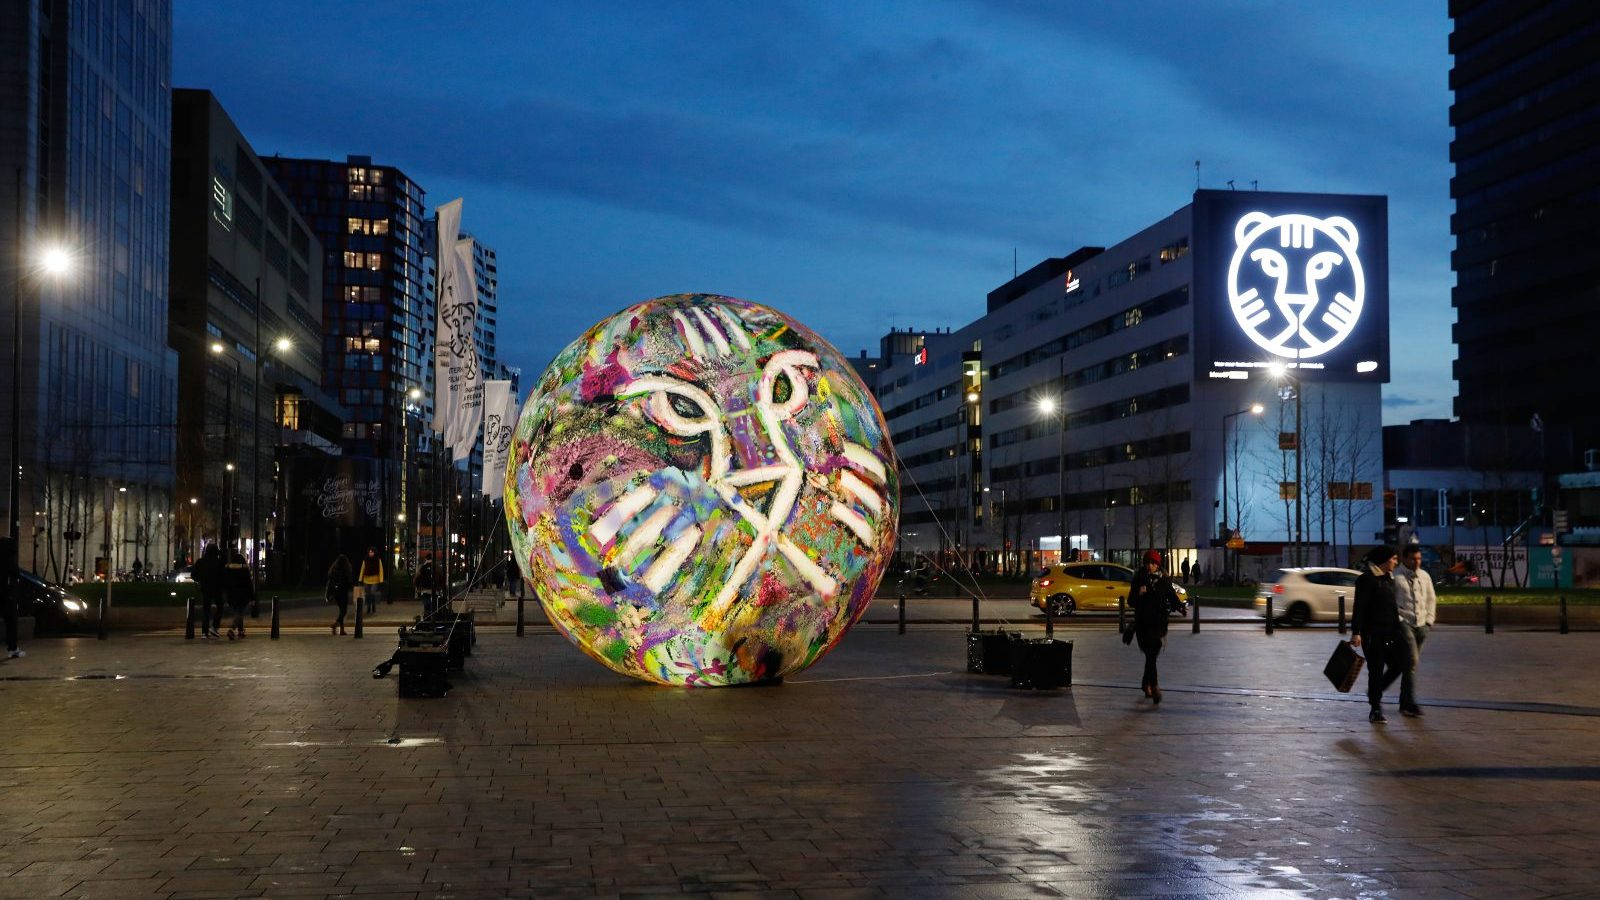 Opblaasbare wereld planeet inflatable planet sphere - IFFR - Publi air